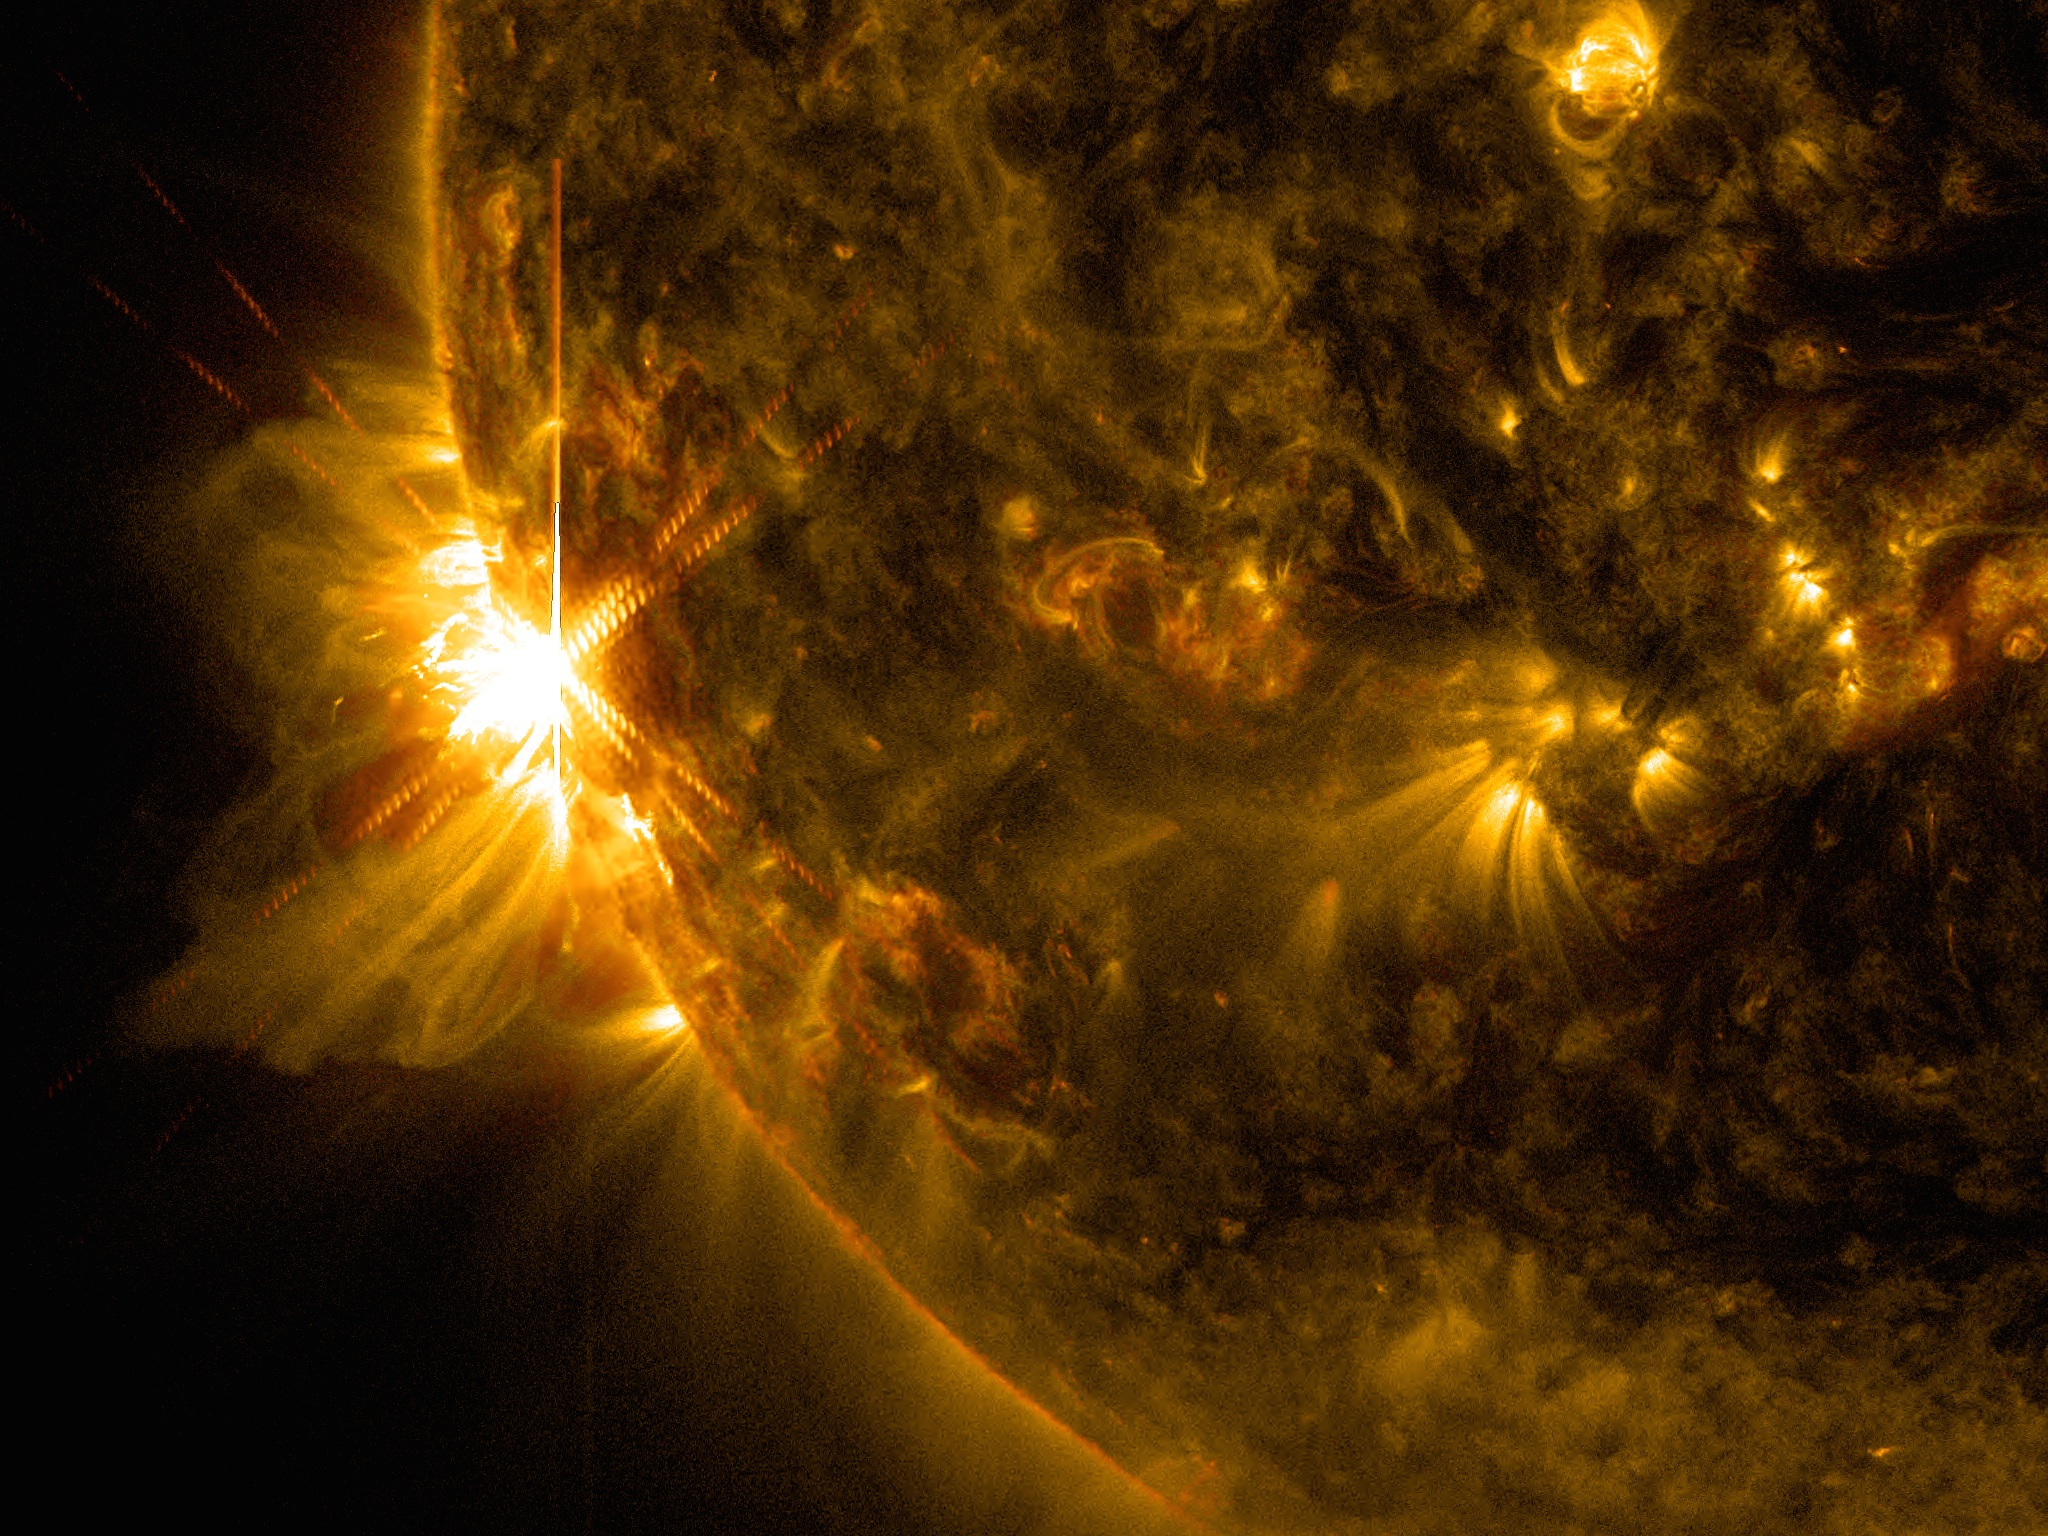 Sun Unleashes 2 Major Solar Flares Back-to-Back (Video)